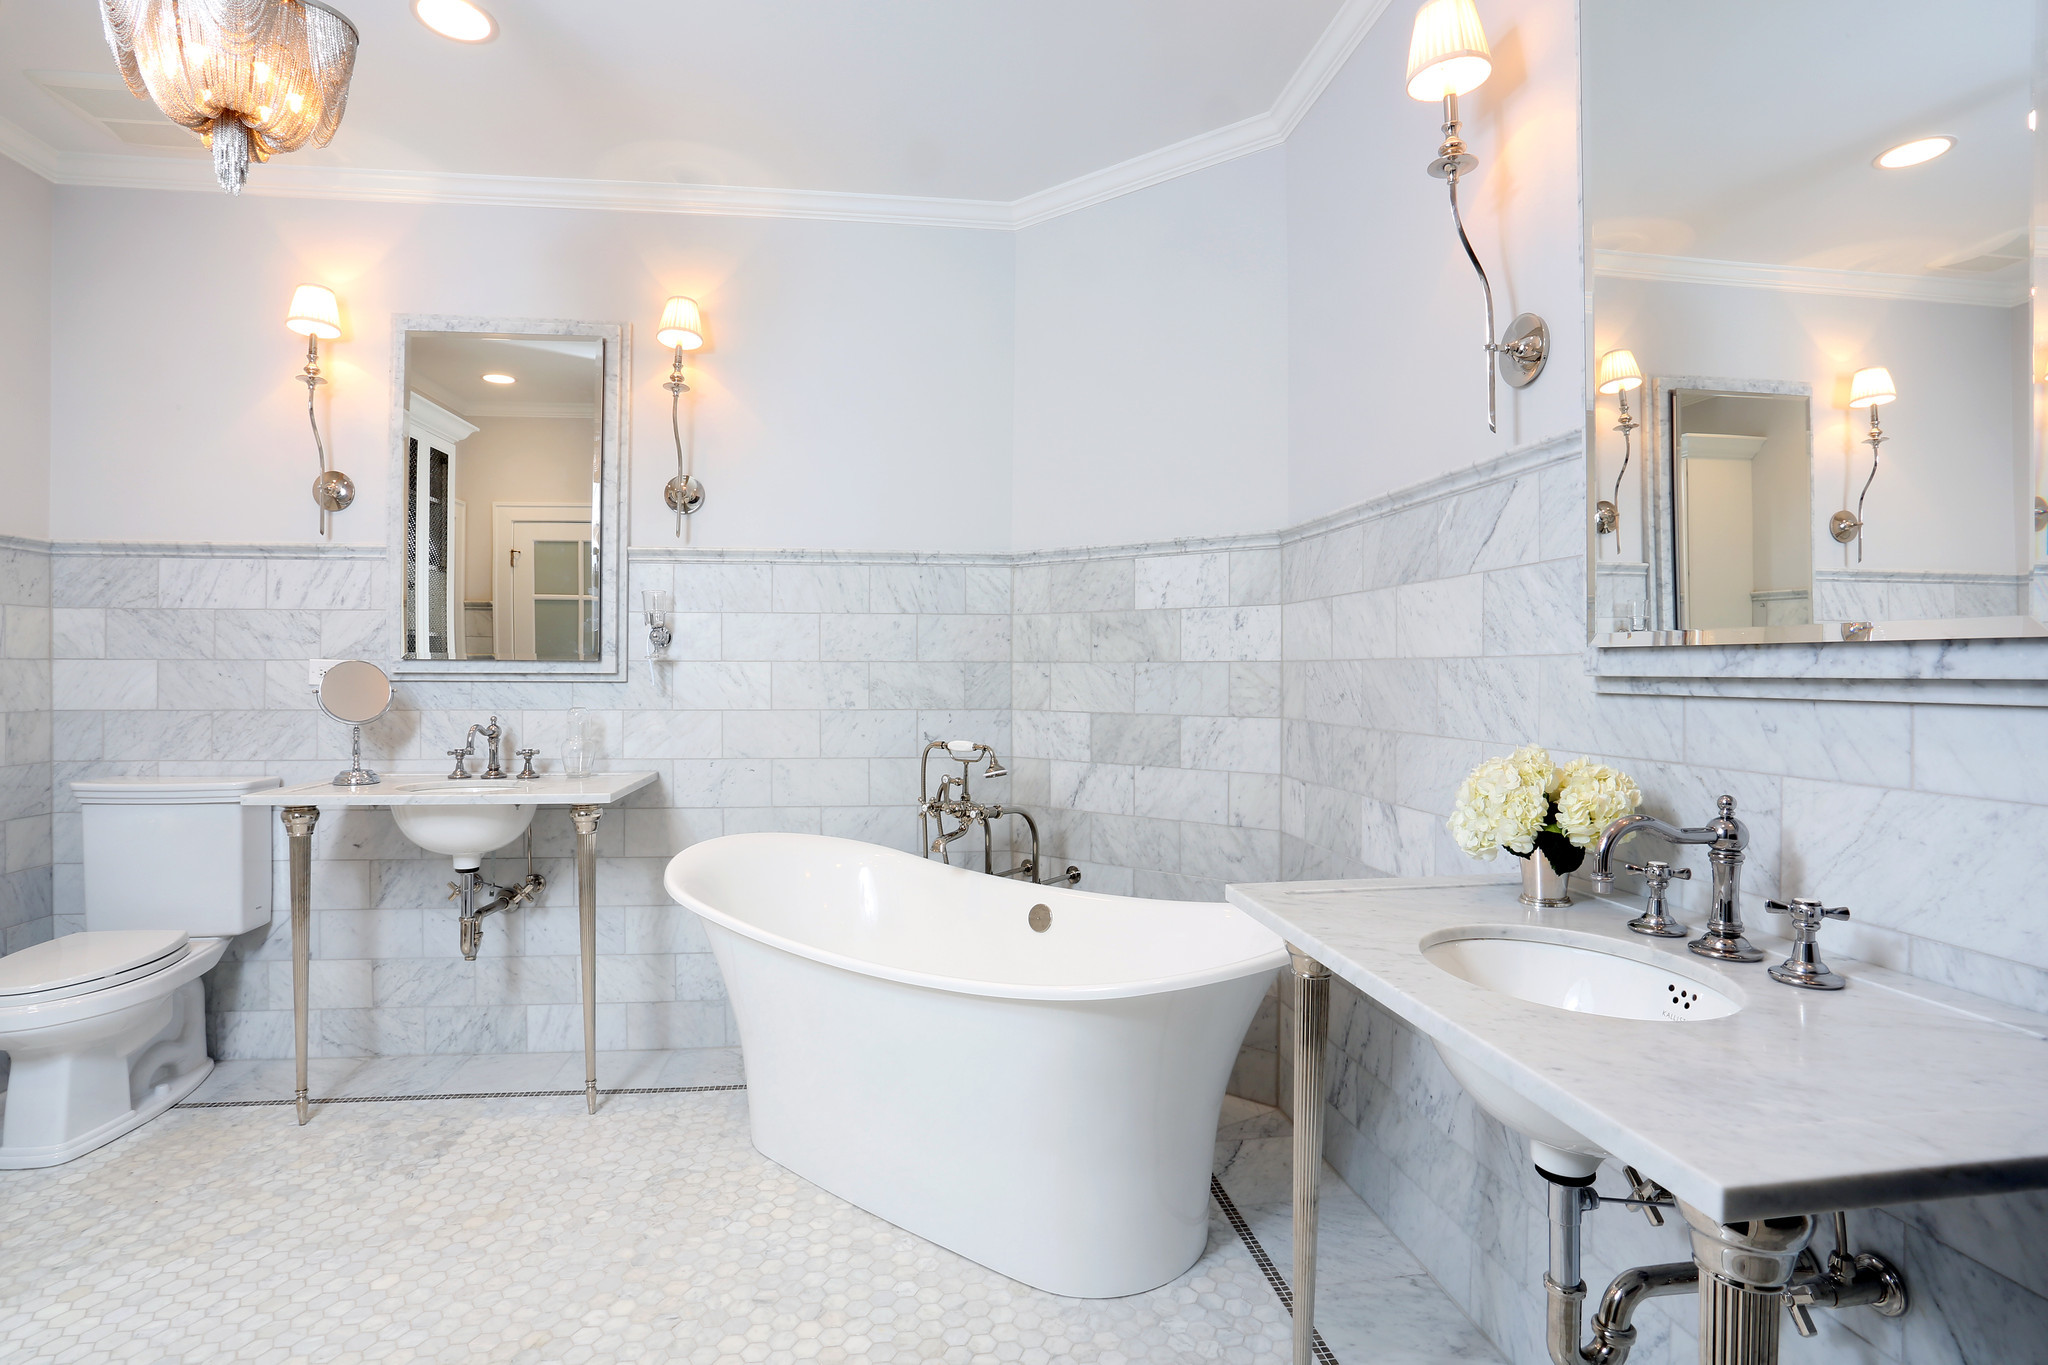 Parisian style bathroom in lagrange draws industry for Paris inspired bathroom ideas